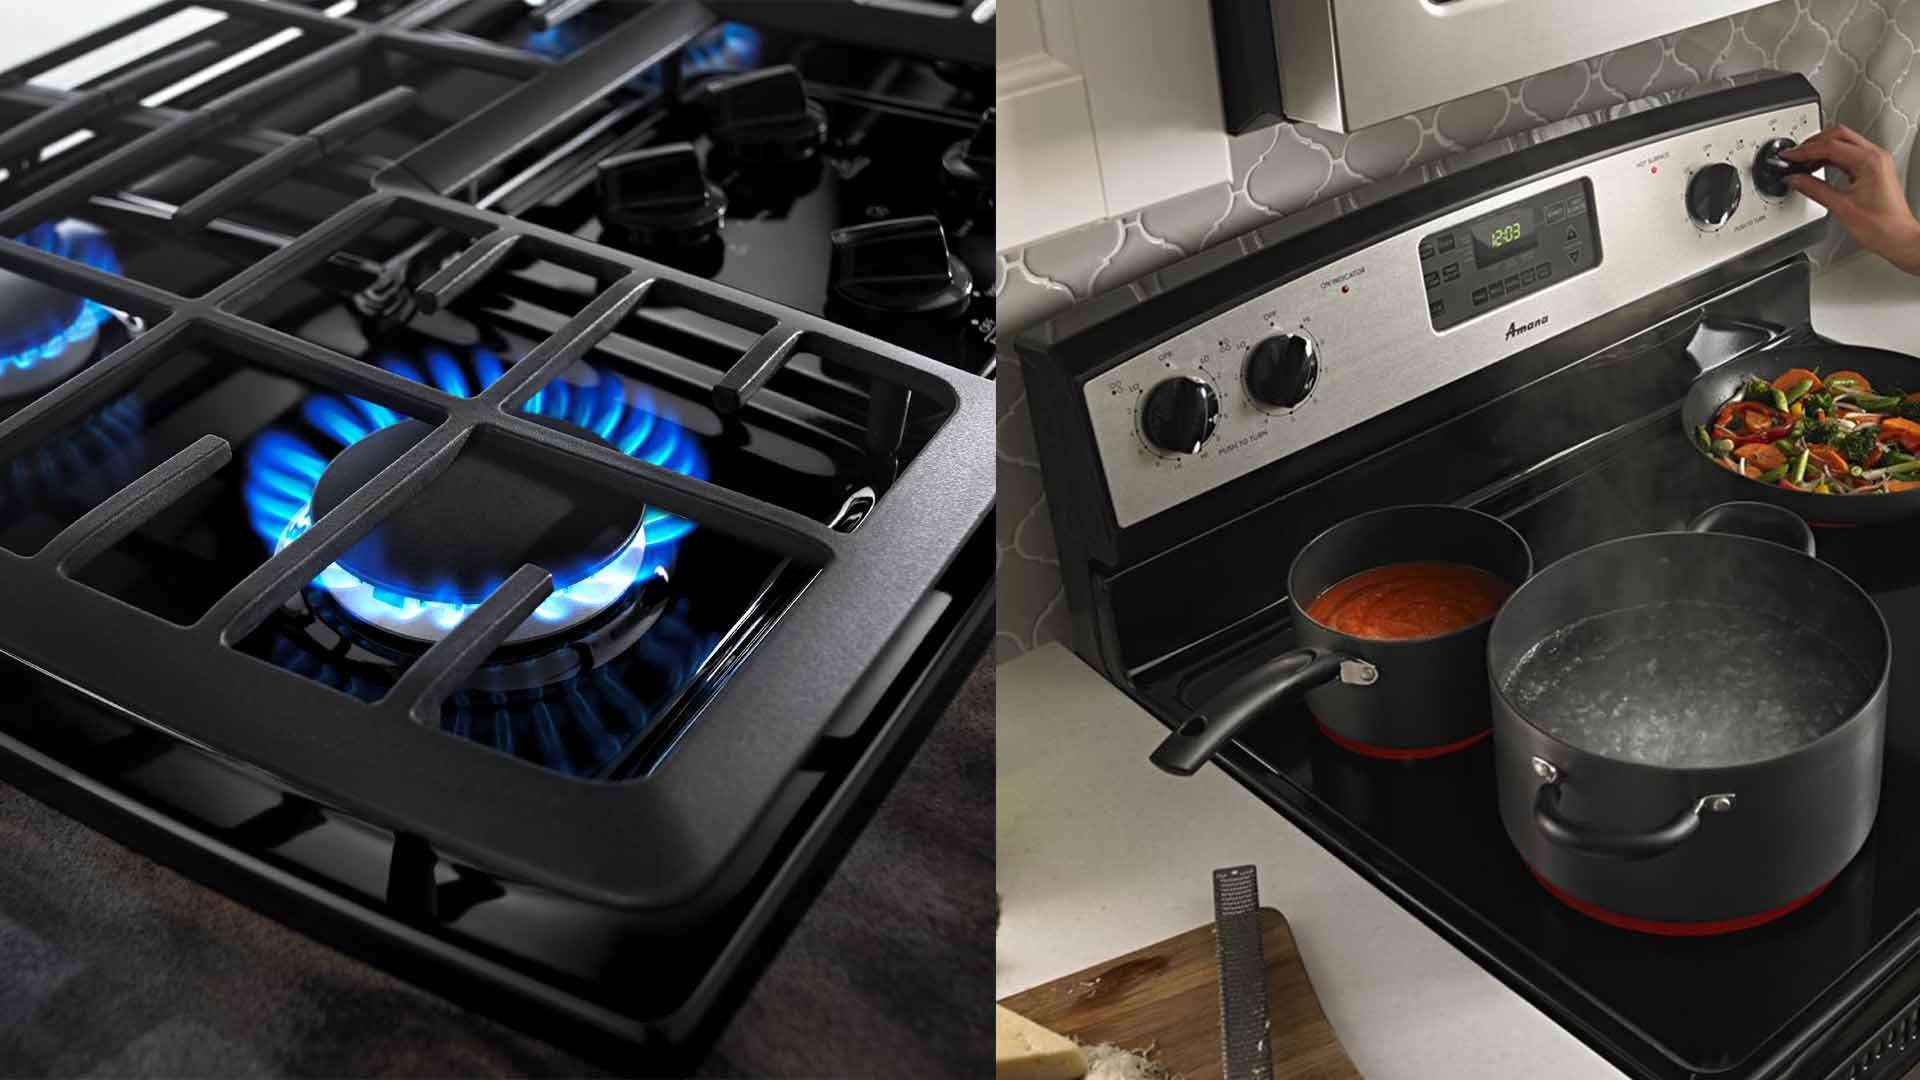 The Differences Between Cooking With Electric And Gas